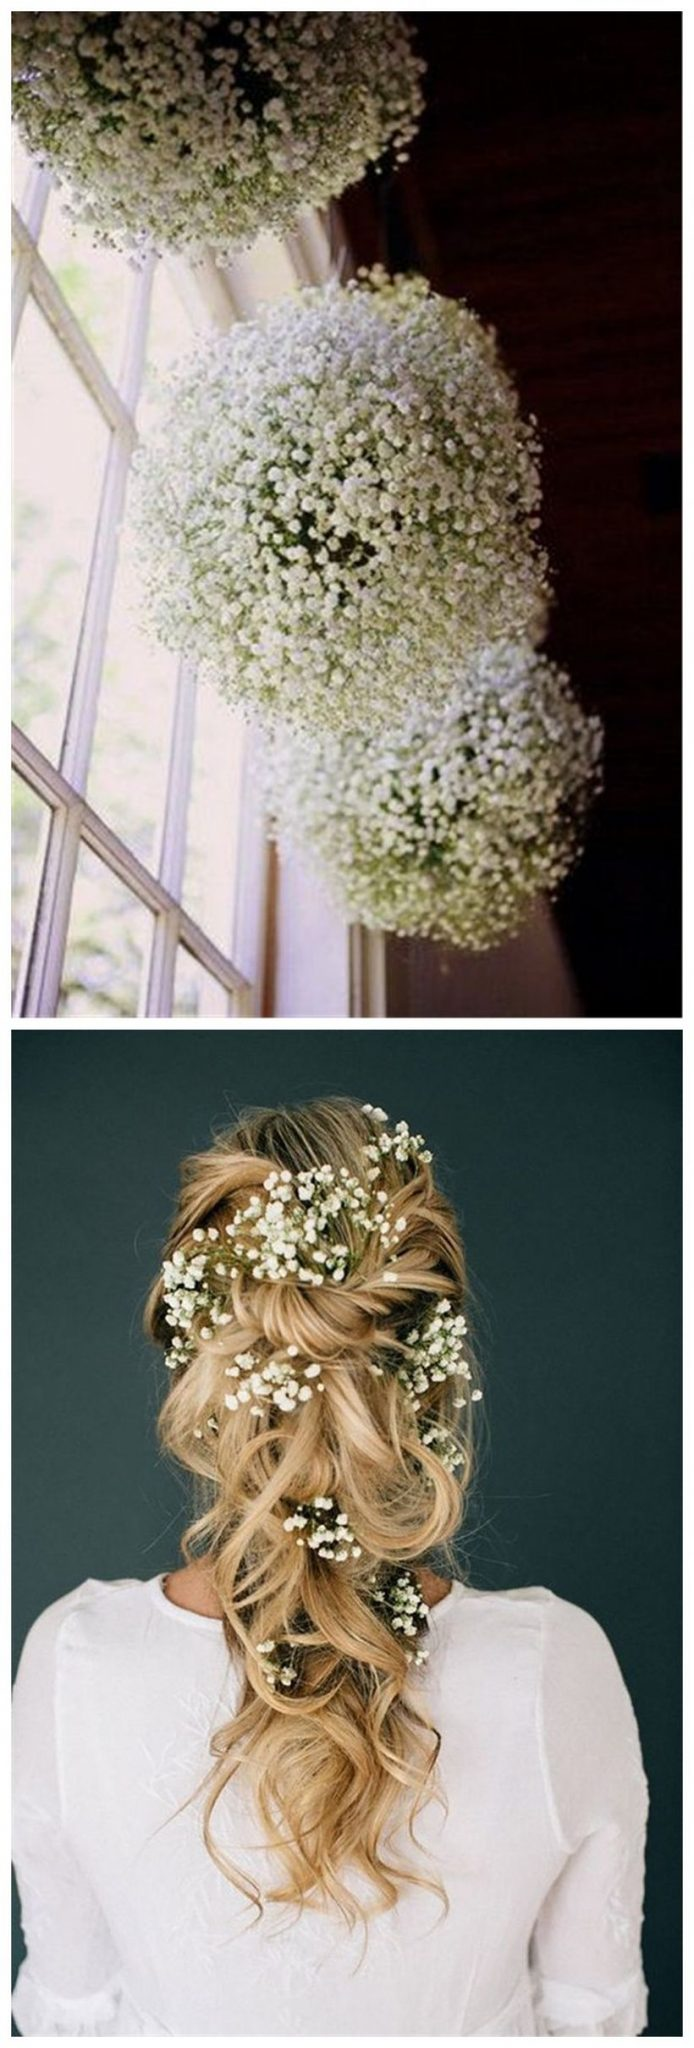 Gorgeous rustic wedding hairstyles ideas 6